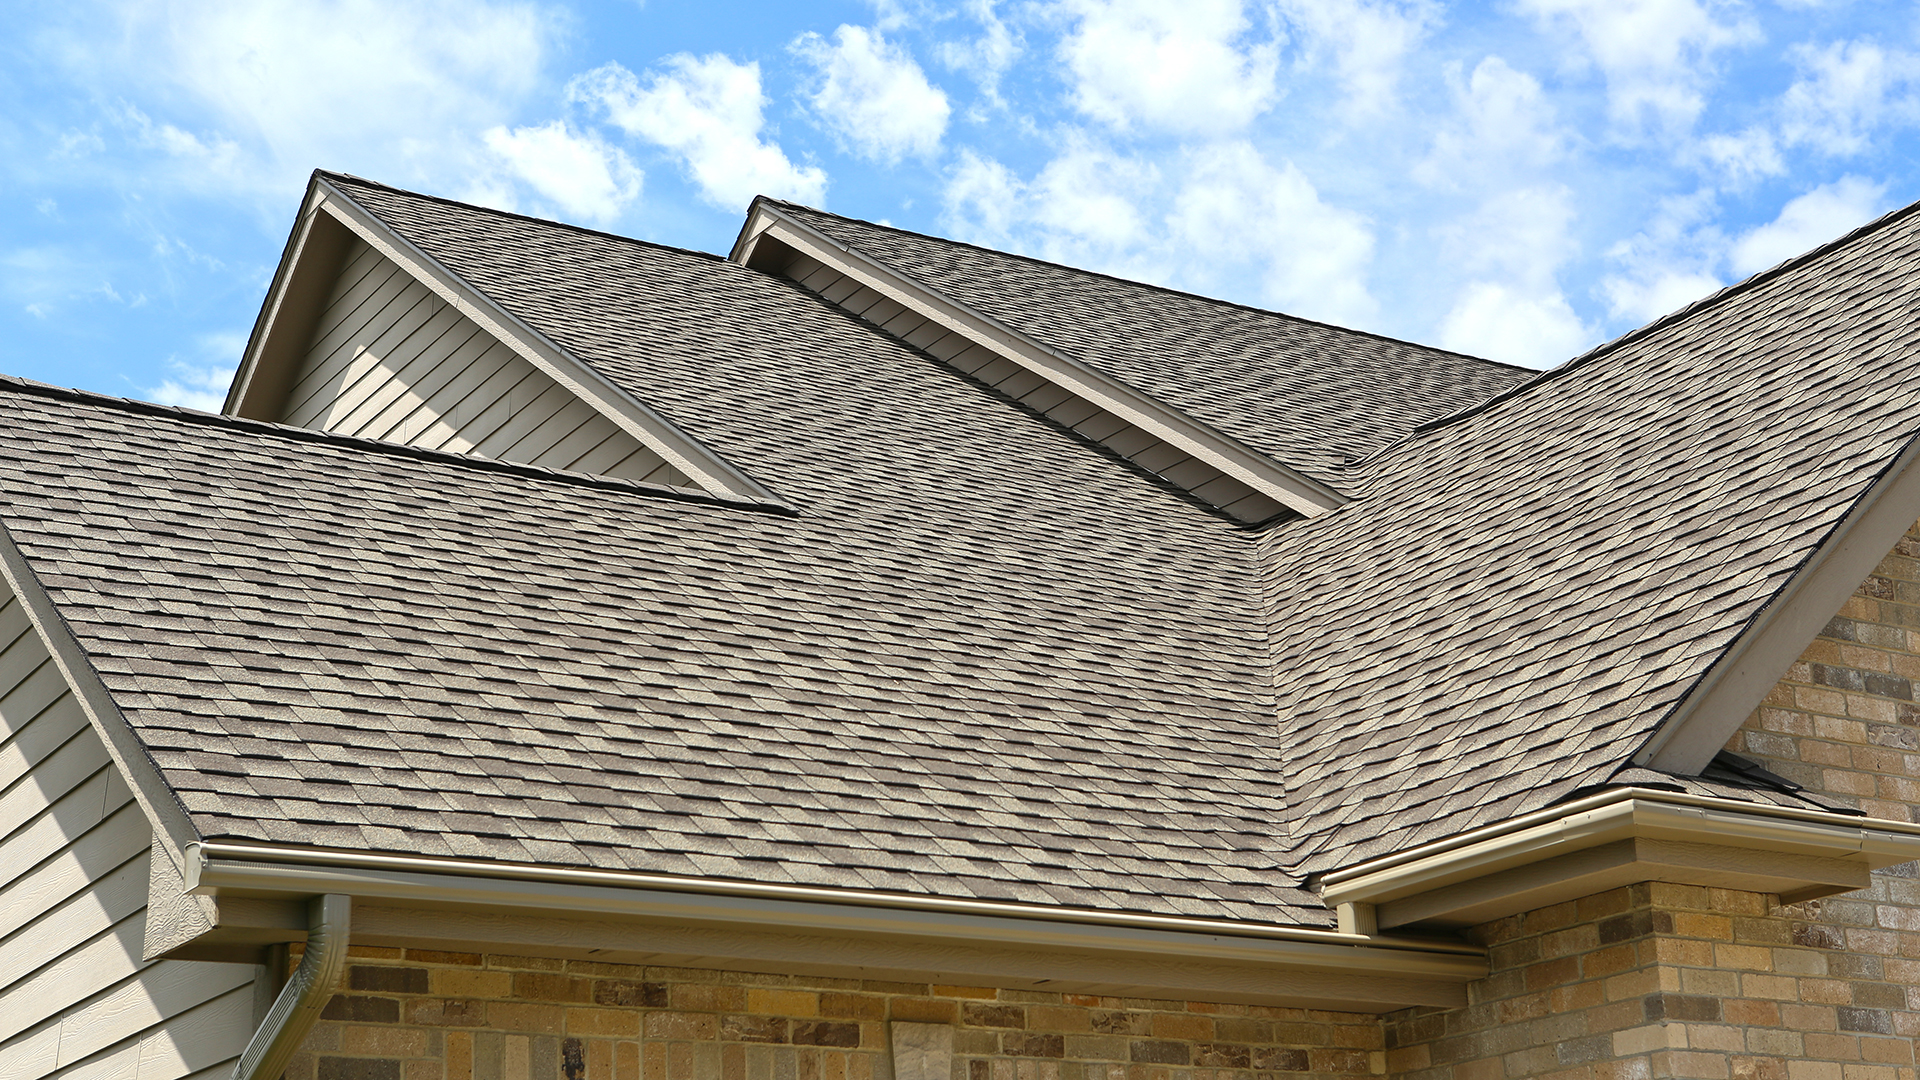 Roof Valley and Hip roof in Urbandale, IA